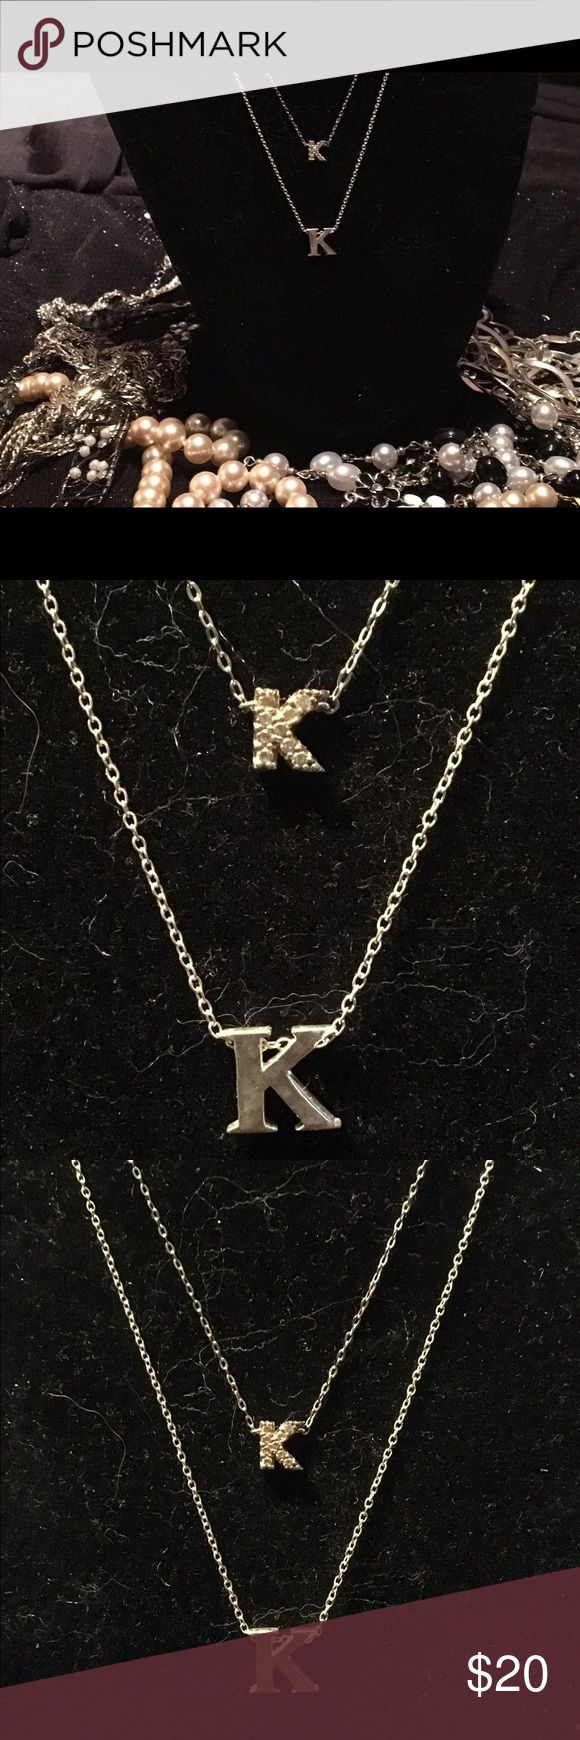 Does Your Name Start With A K😘💖💕🛍📦 I have so many K pieces or pieces that have my initials on them I am letting some of my go bc it seems like everything I have is my favorite, then I lose a room to storage! These r 2 great pieces u can wear them together which is how I have them shown & priced or if you are interested in them individually let me know. They differ in length so it's nice difference between them both are solid sterling silver and one has tiny czs. Modeled after designer…